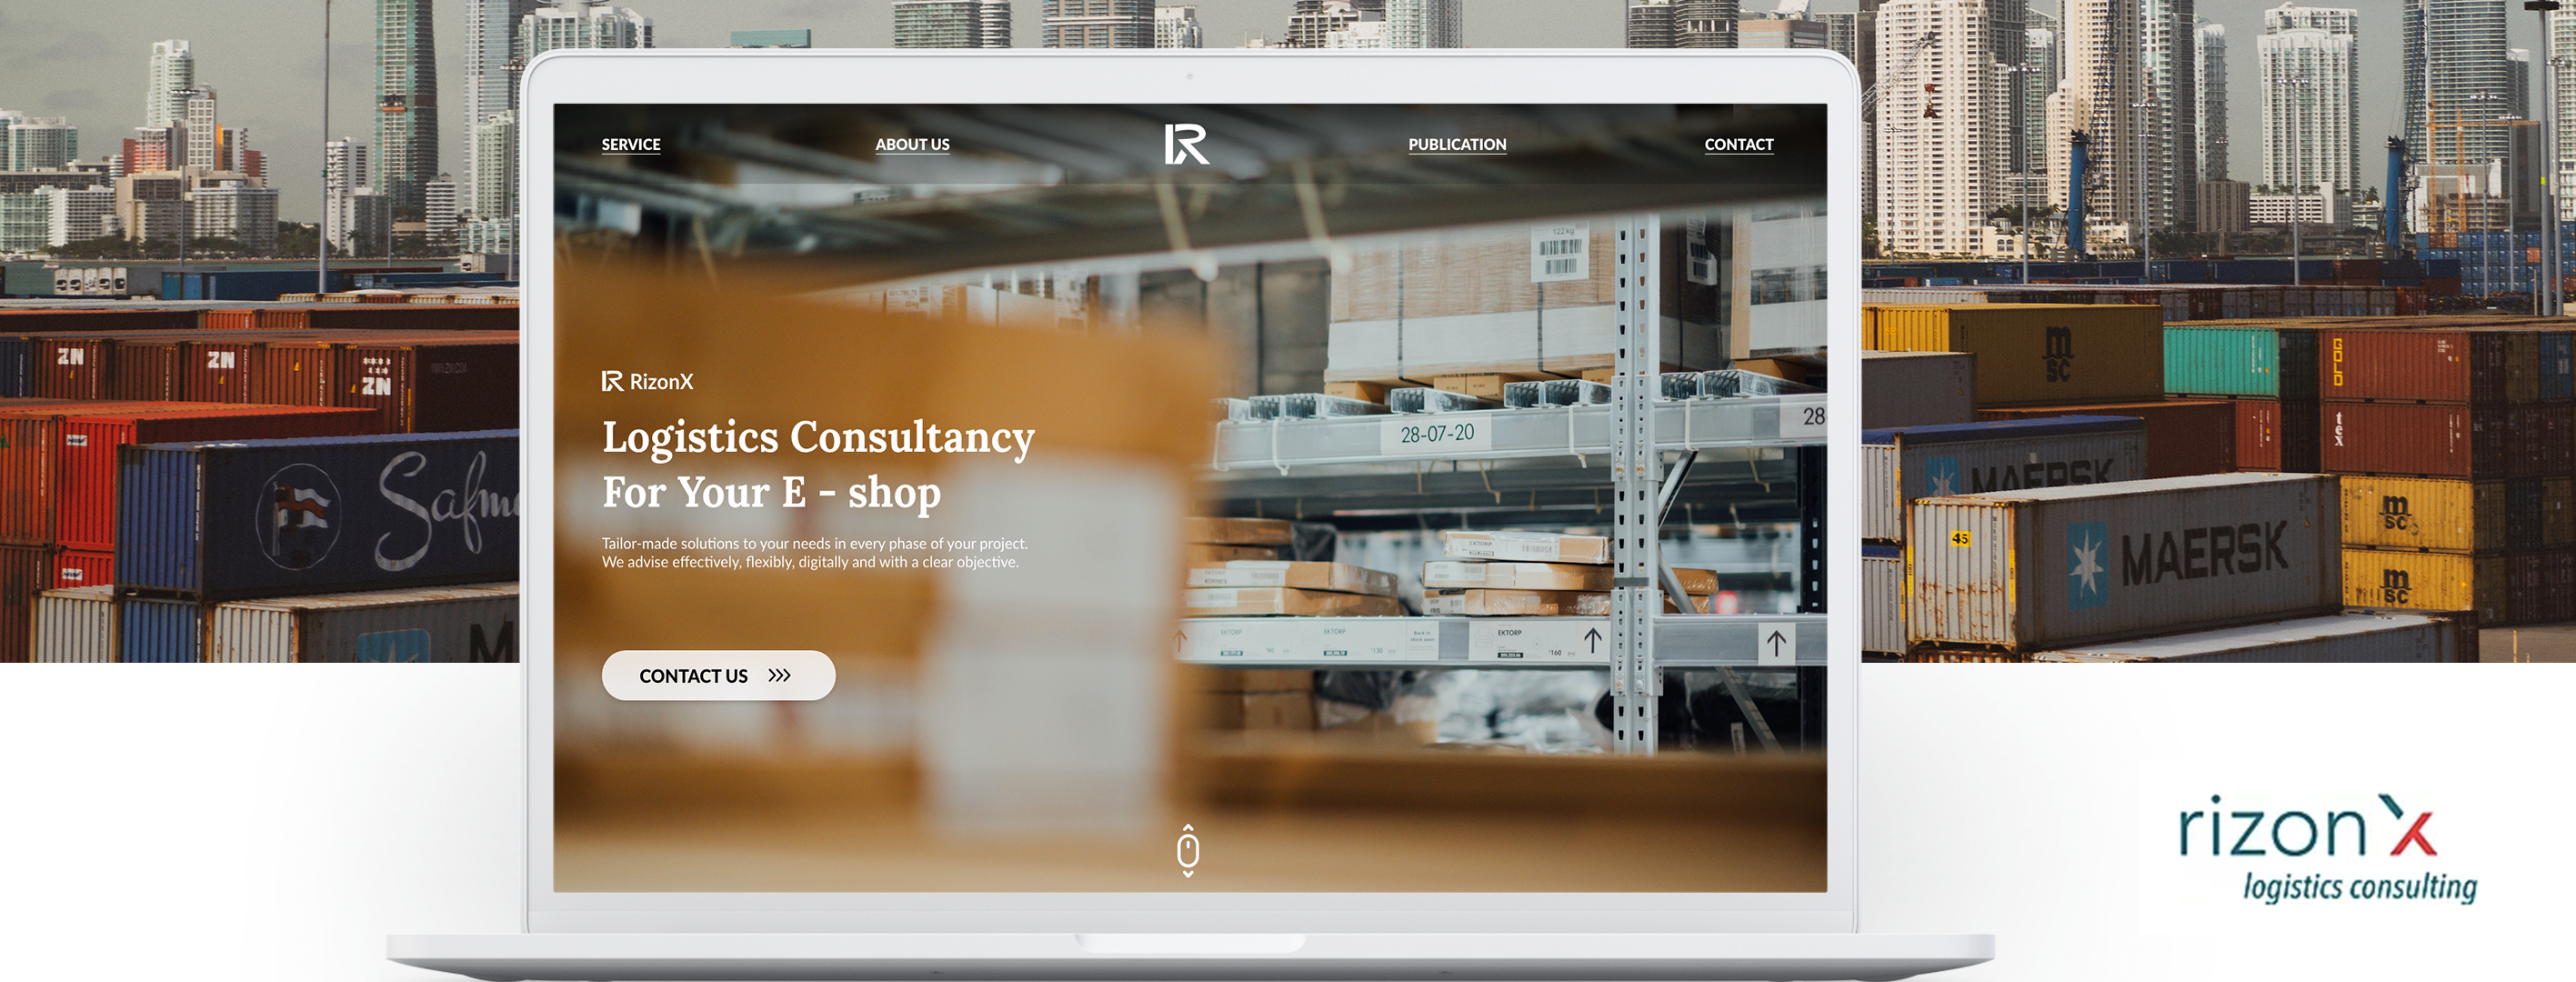 RizonX logistics website design